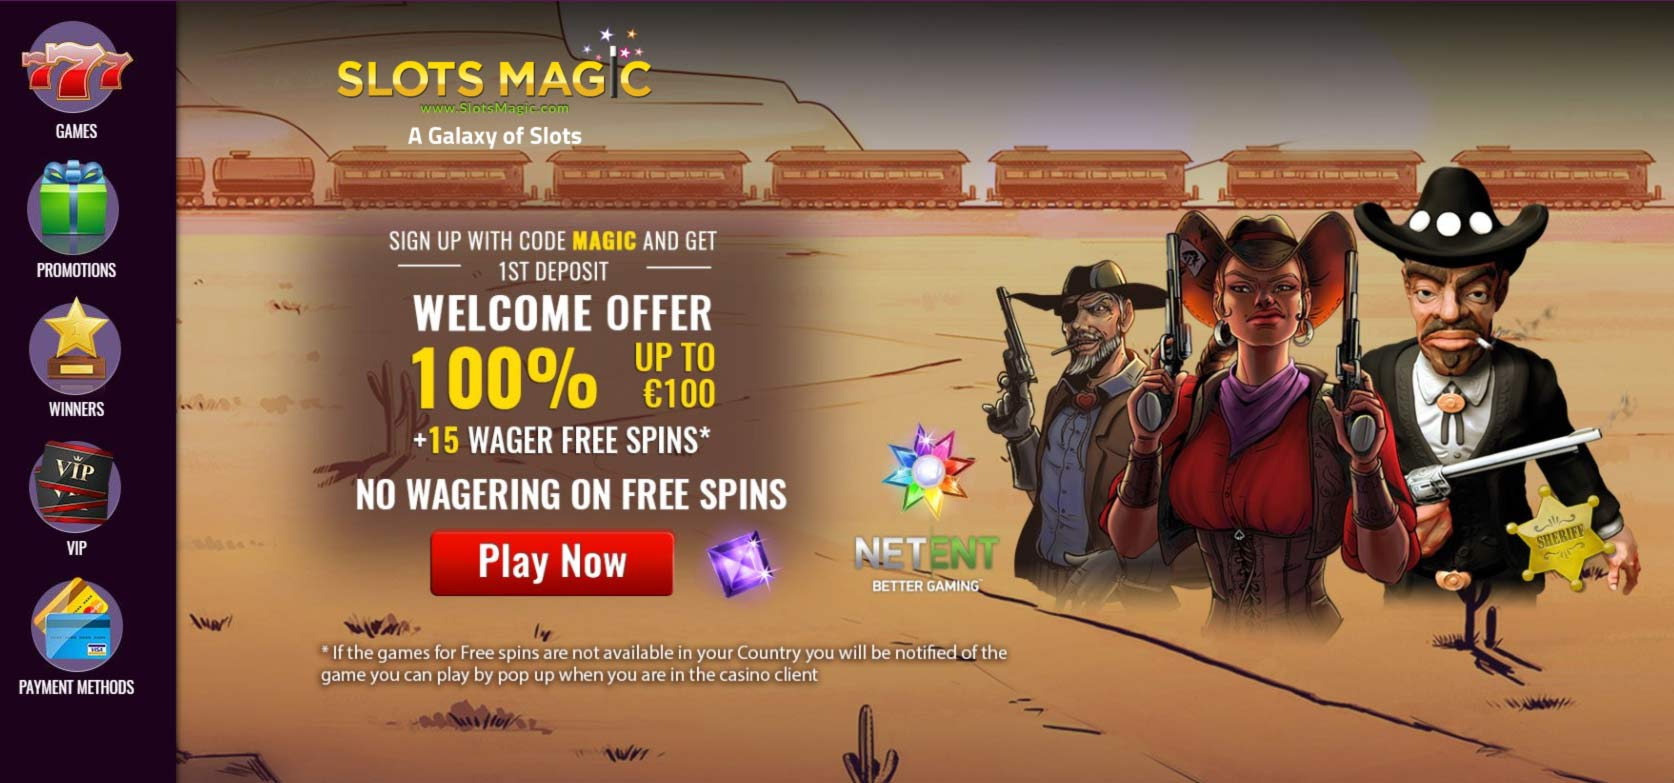 SlotsMagic Homepage